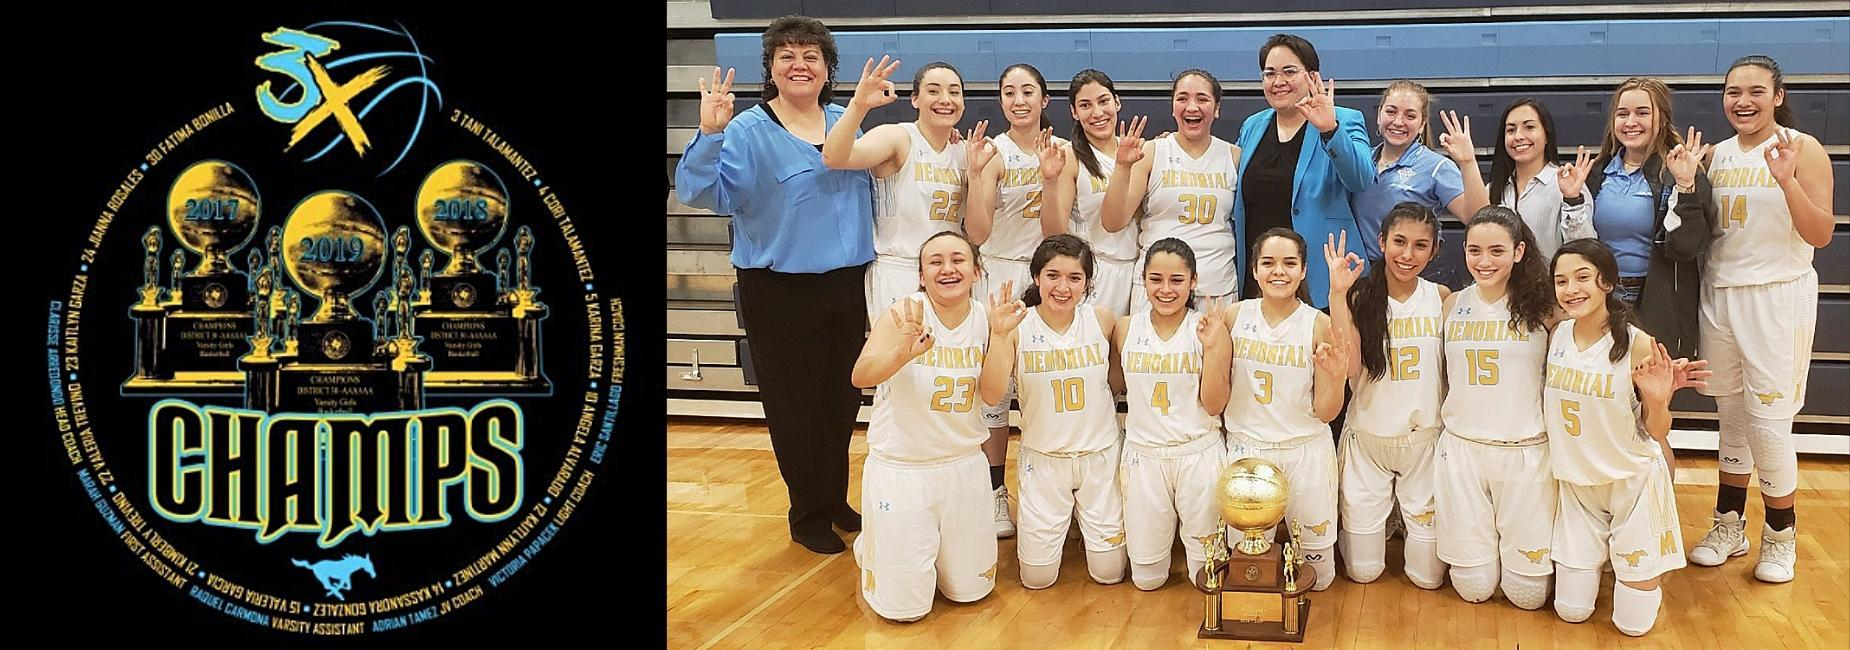 champs seal and picture of ladies basketball team with trophy